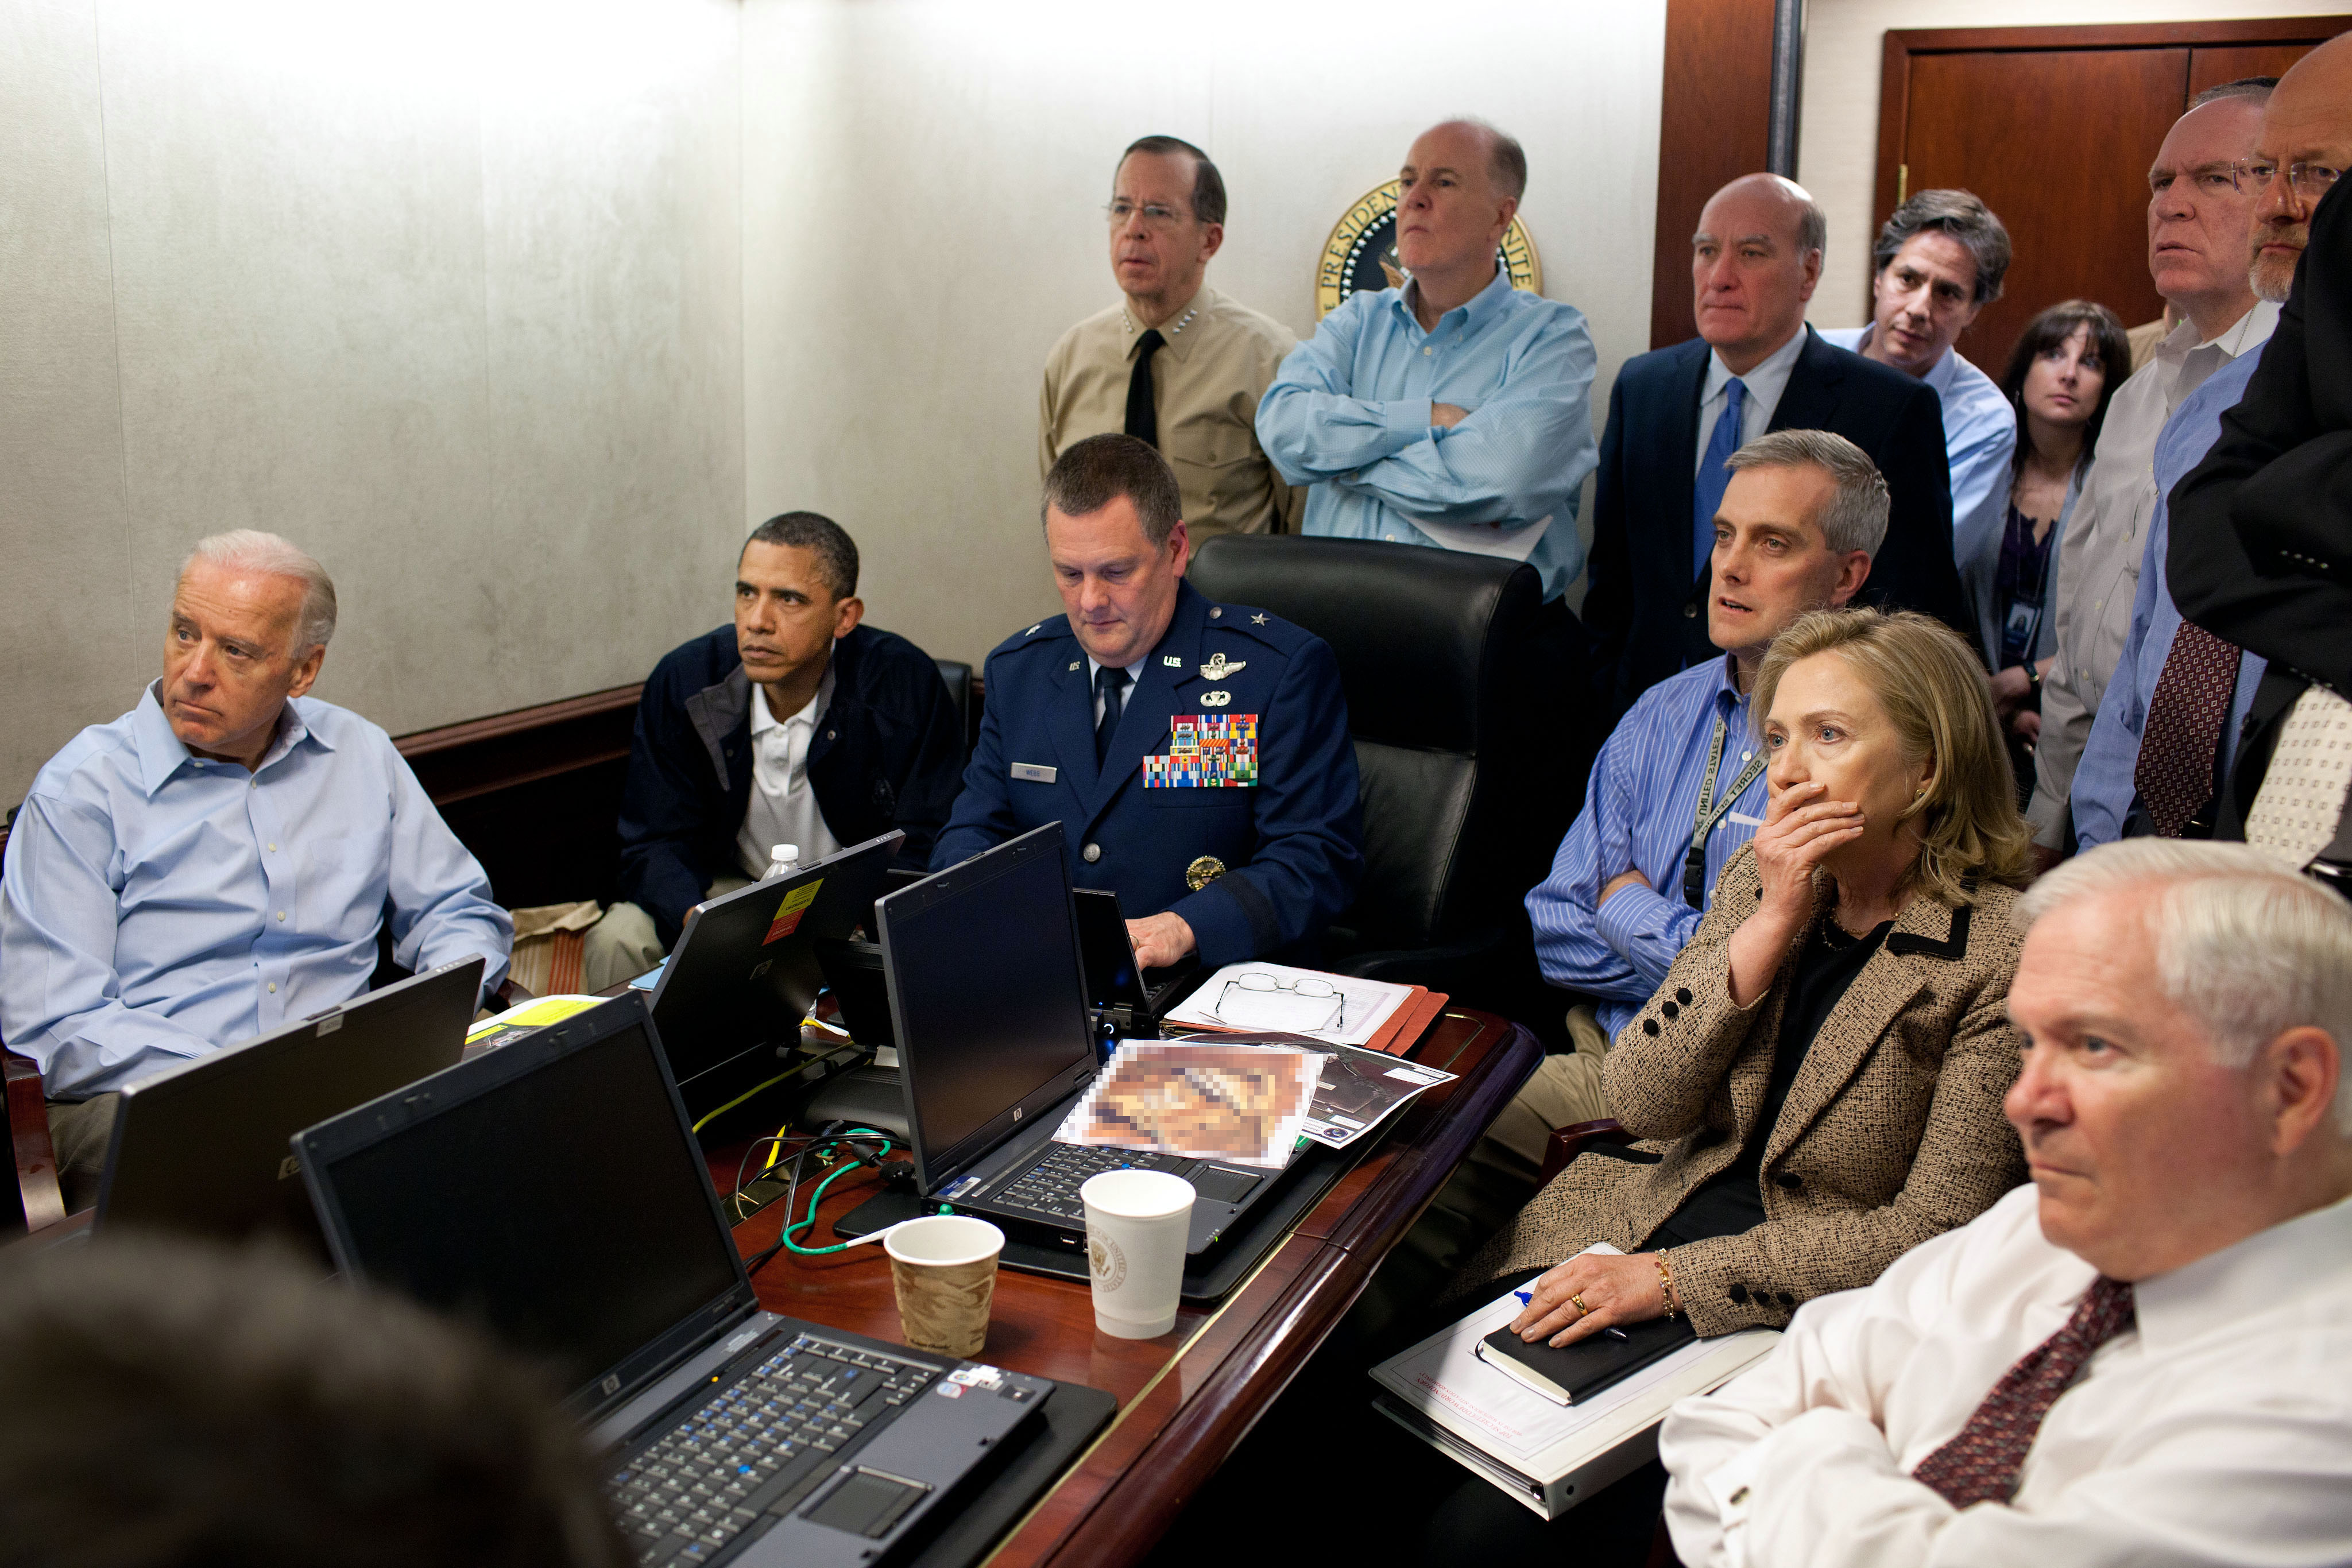 Obama, Hillary Clinton m.fl. under raiden mot bin Laden